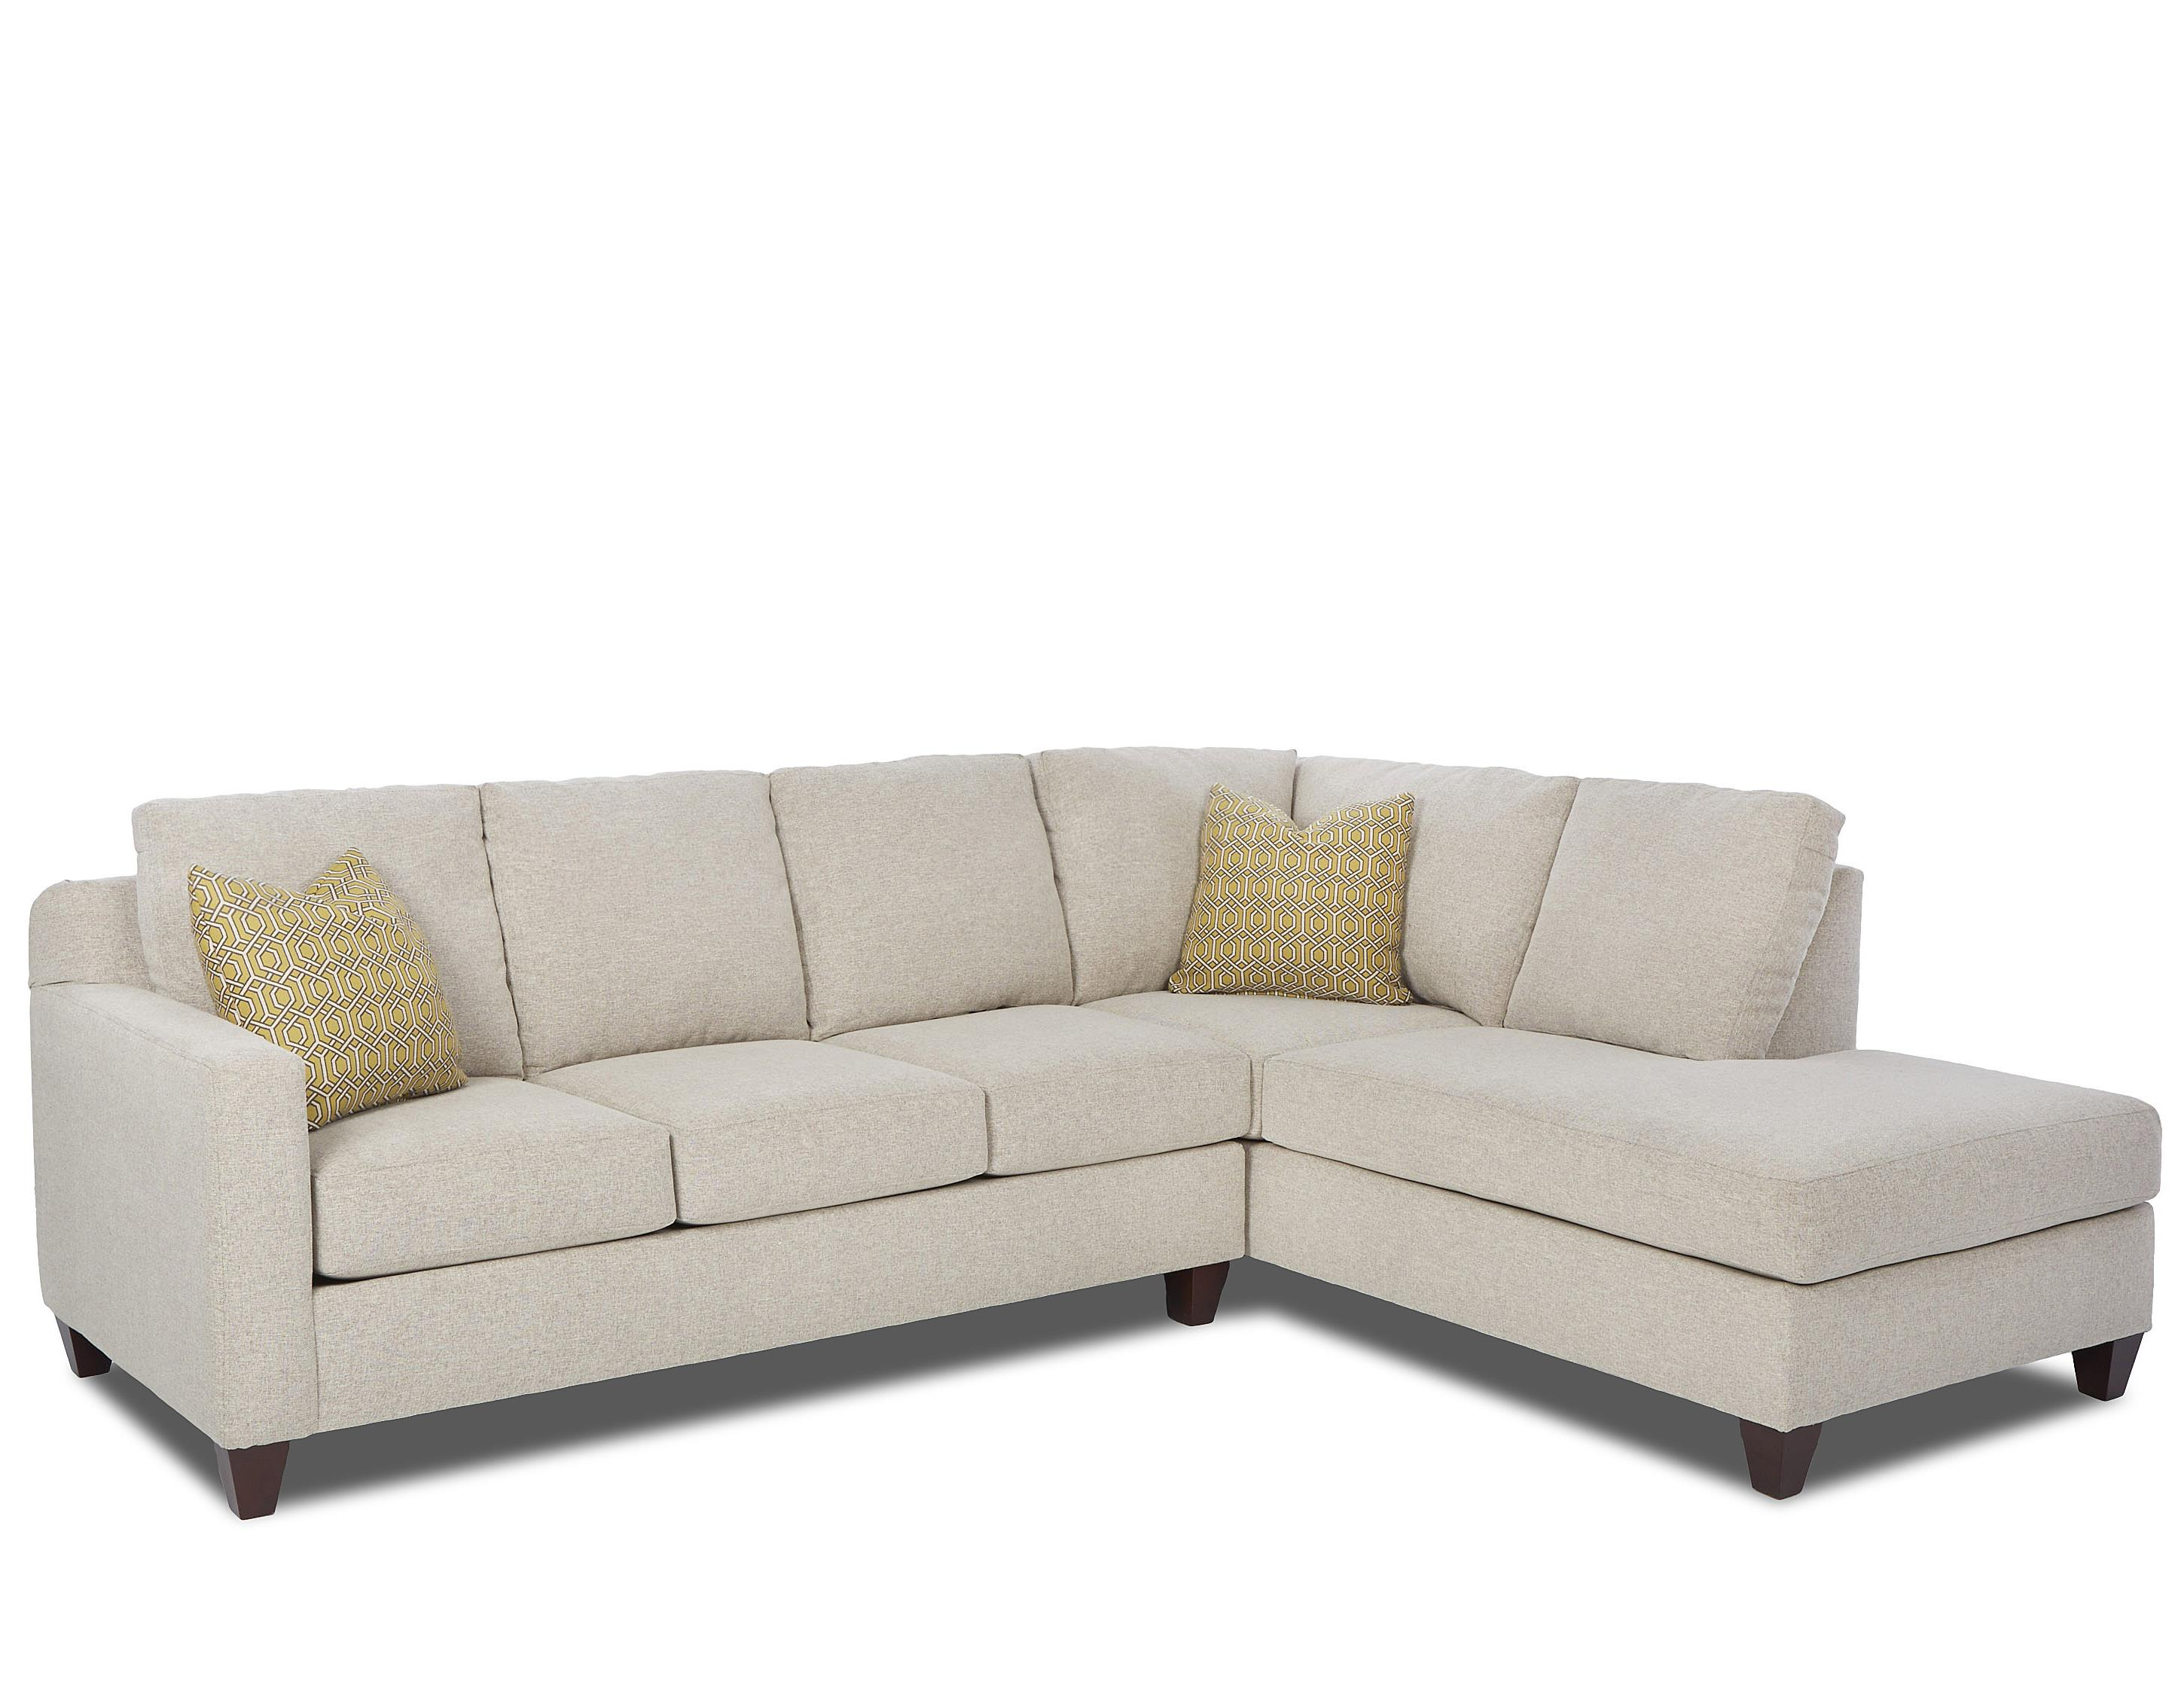 Bosco Sectional by Klaussner at Godby Home Furnishings